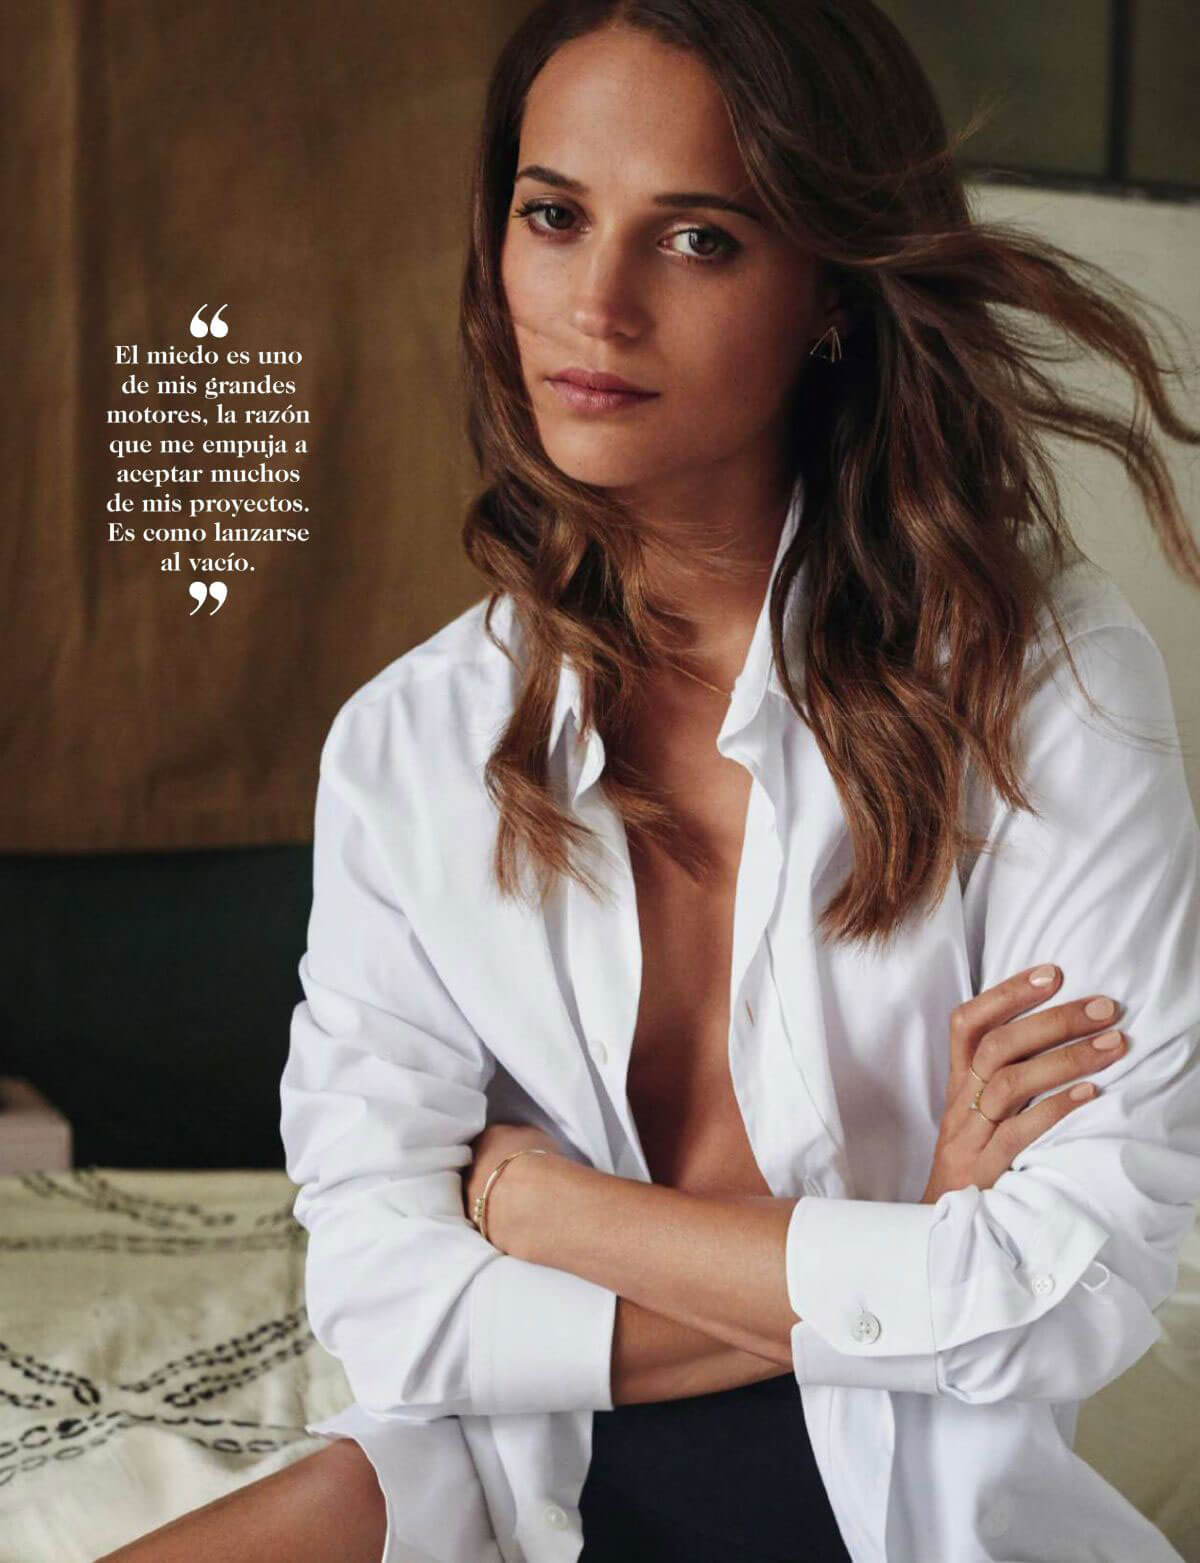 Alicia Vikander Stills in Fotogramas Magazine, Spain March 2018 Issue